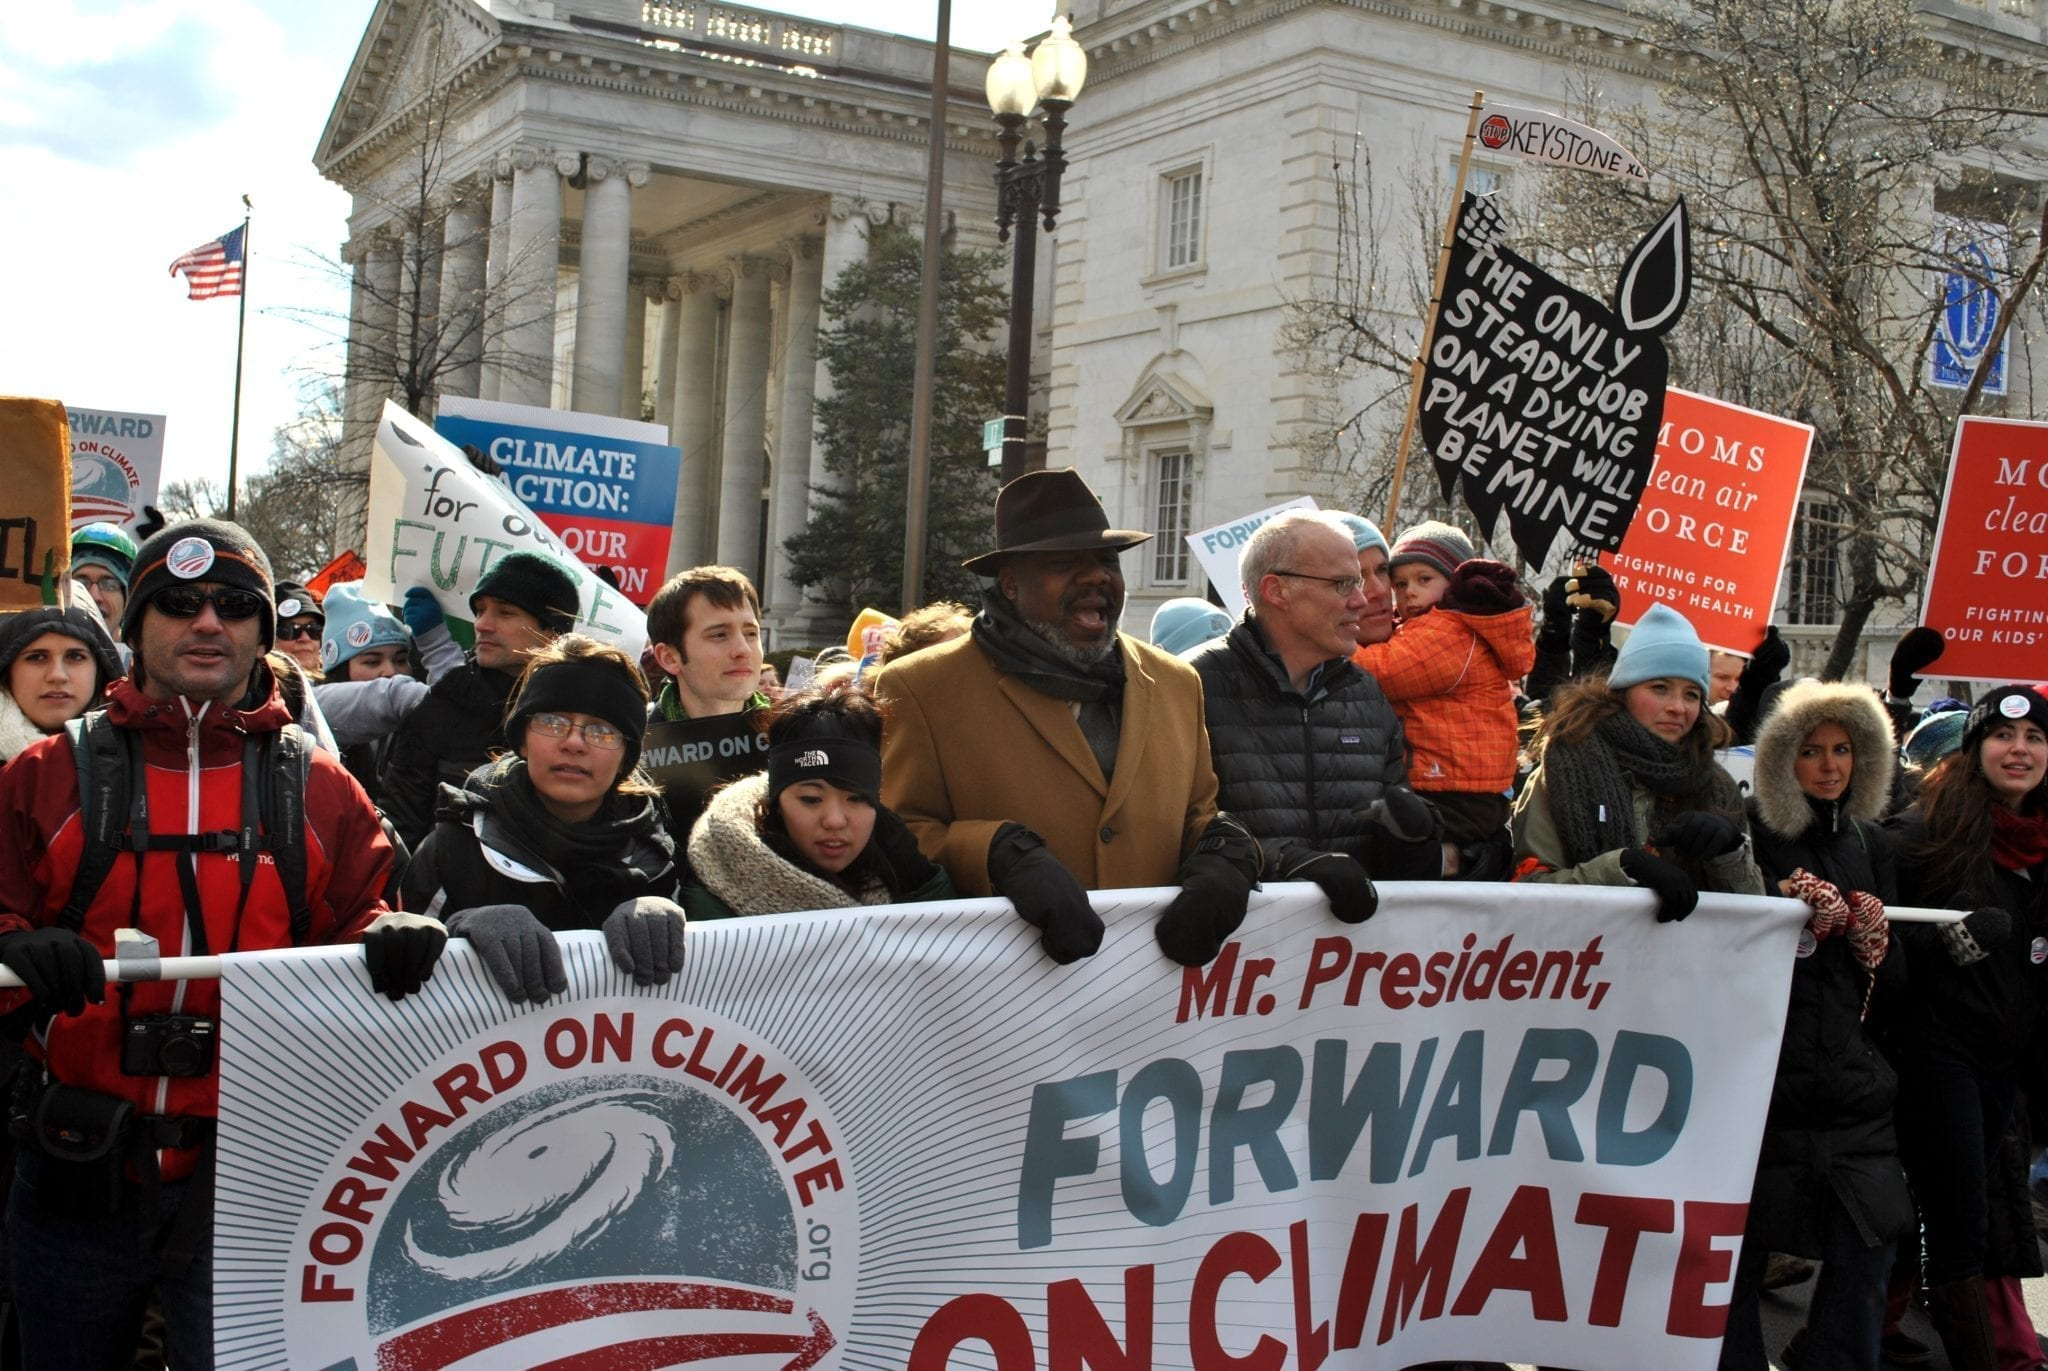 Forward on Climate rally; image by chesapeakeclimate, CC BY-SA 2.0, via Wikimedia Commons, no changes.